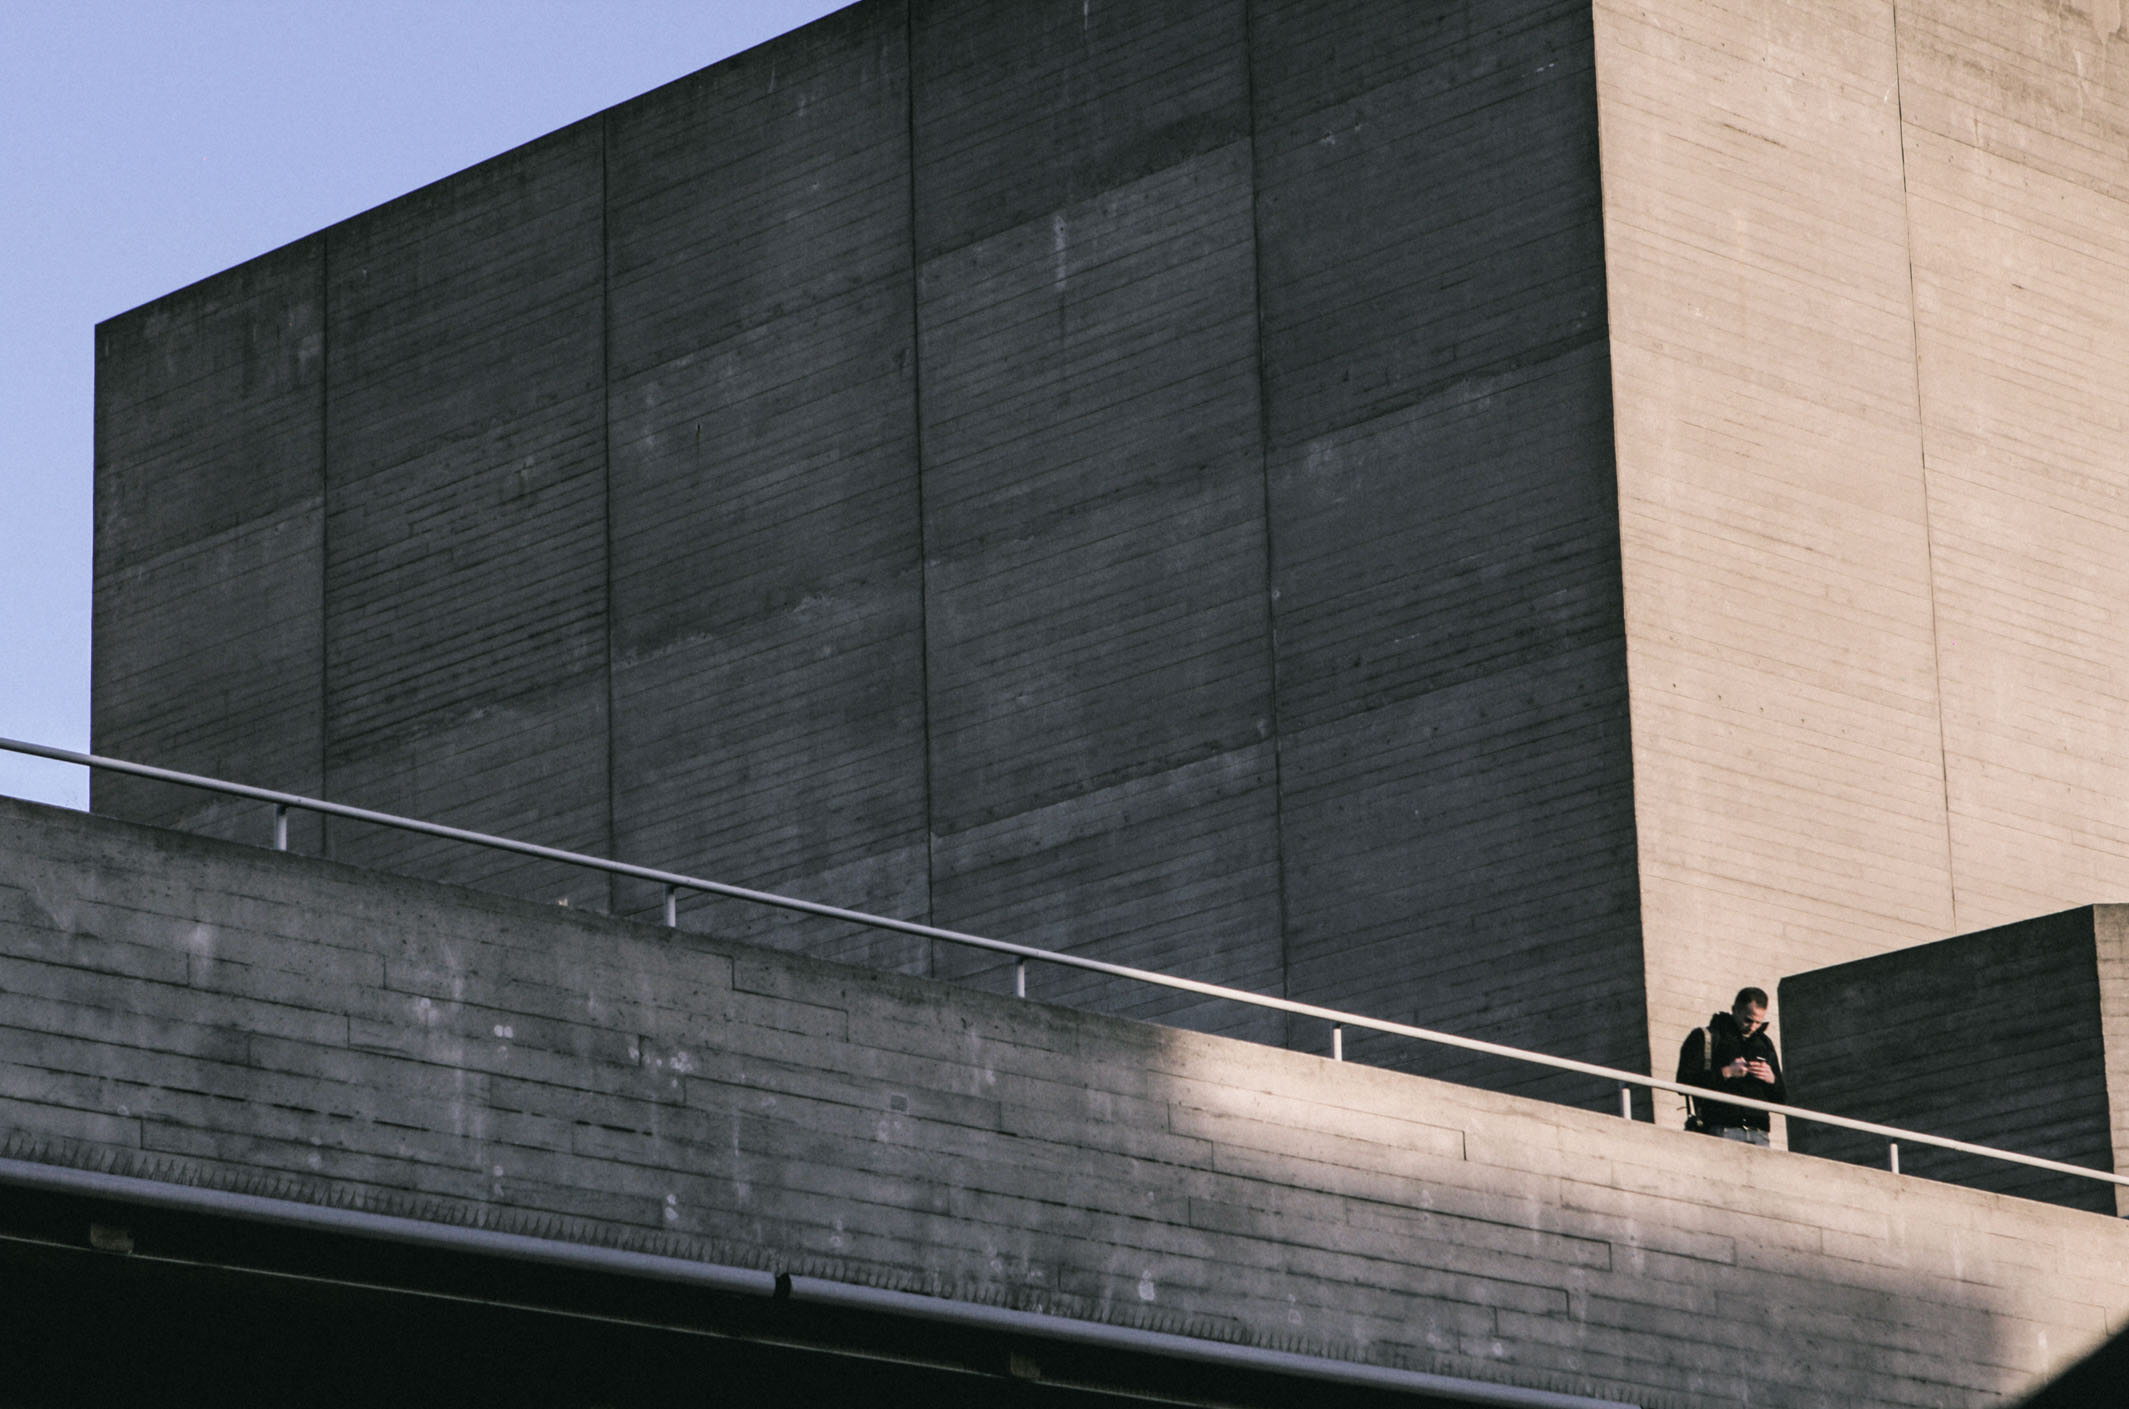 Outside the National Theatre in London